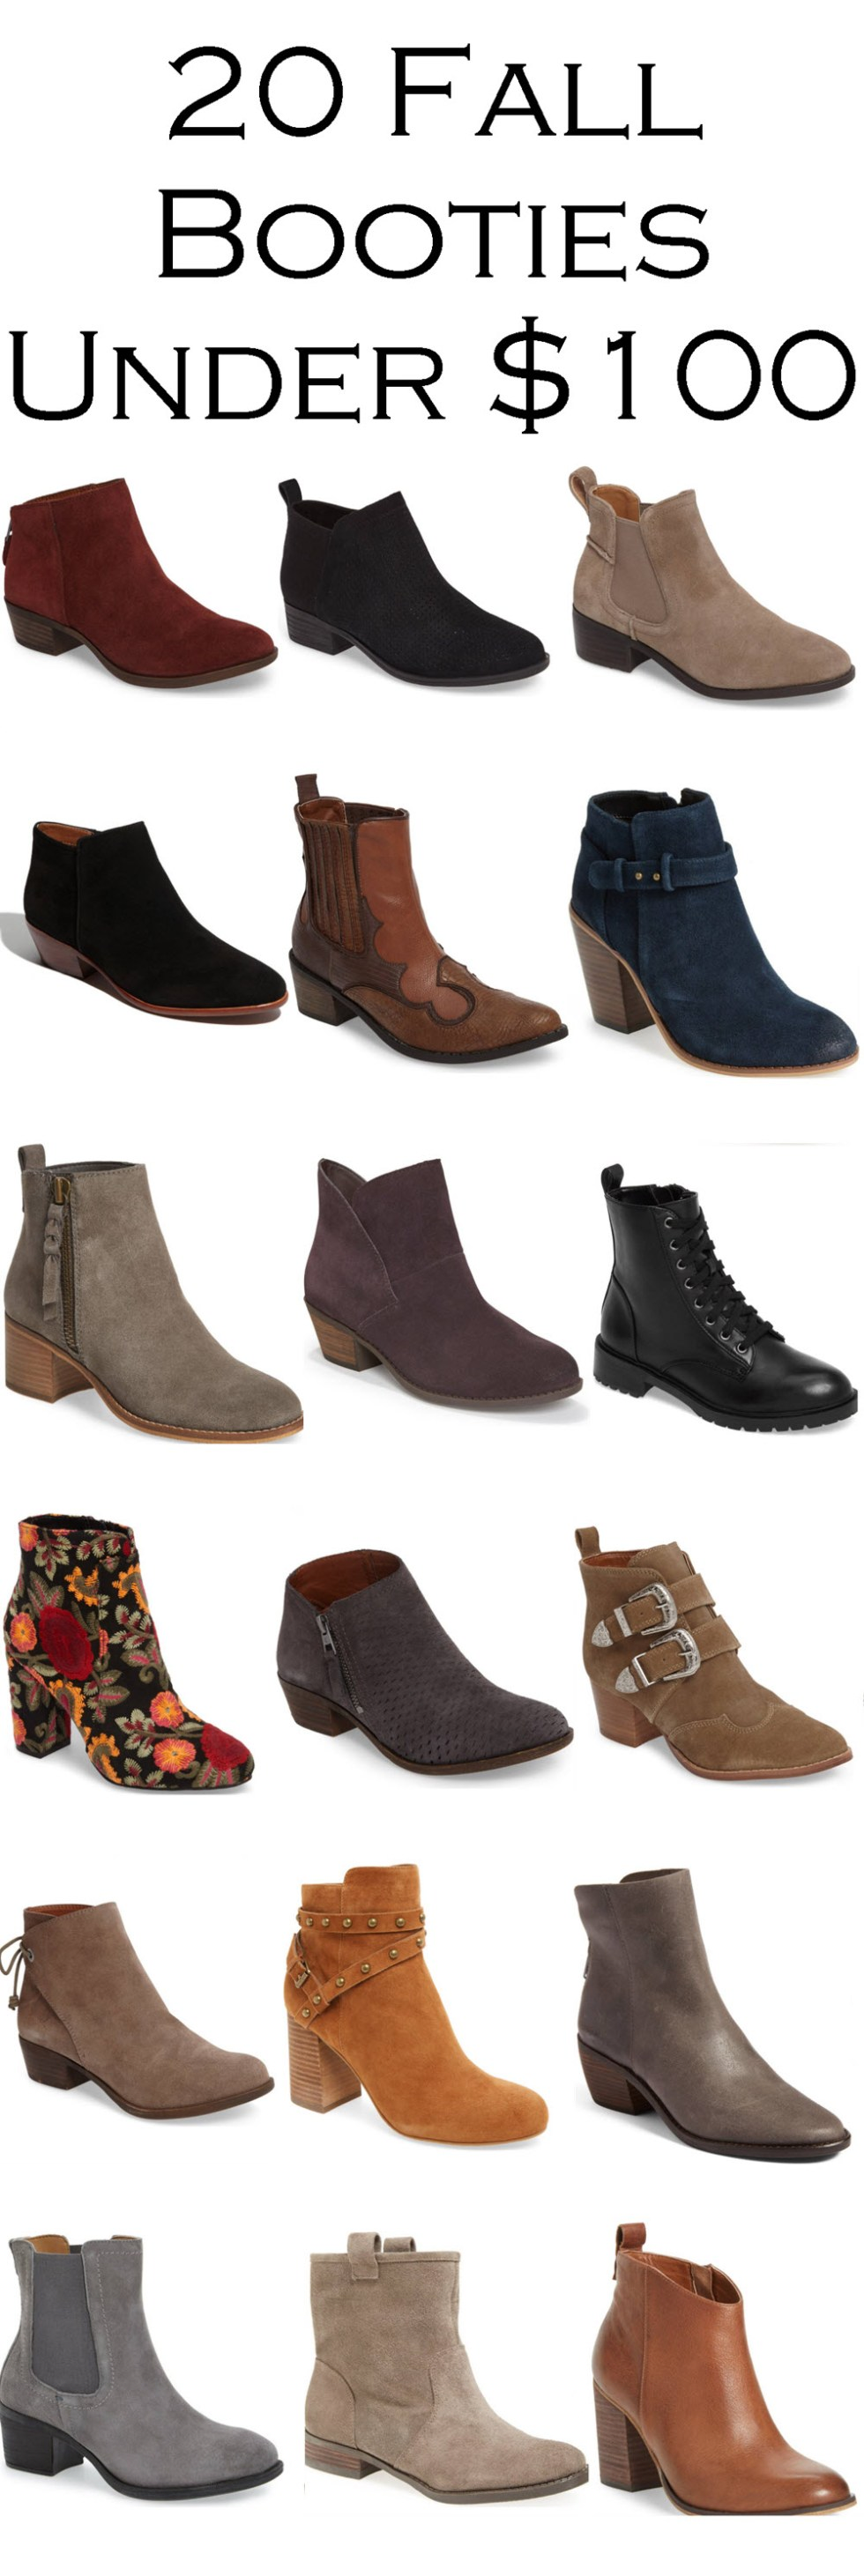 2017 Fall Booties Under $100